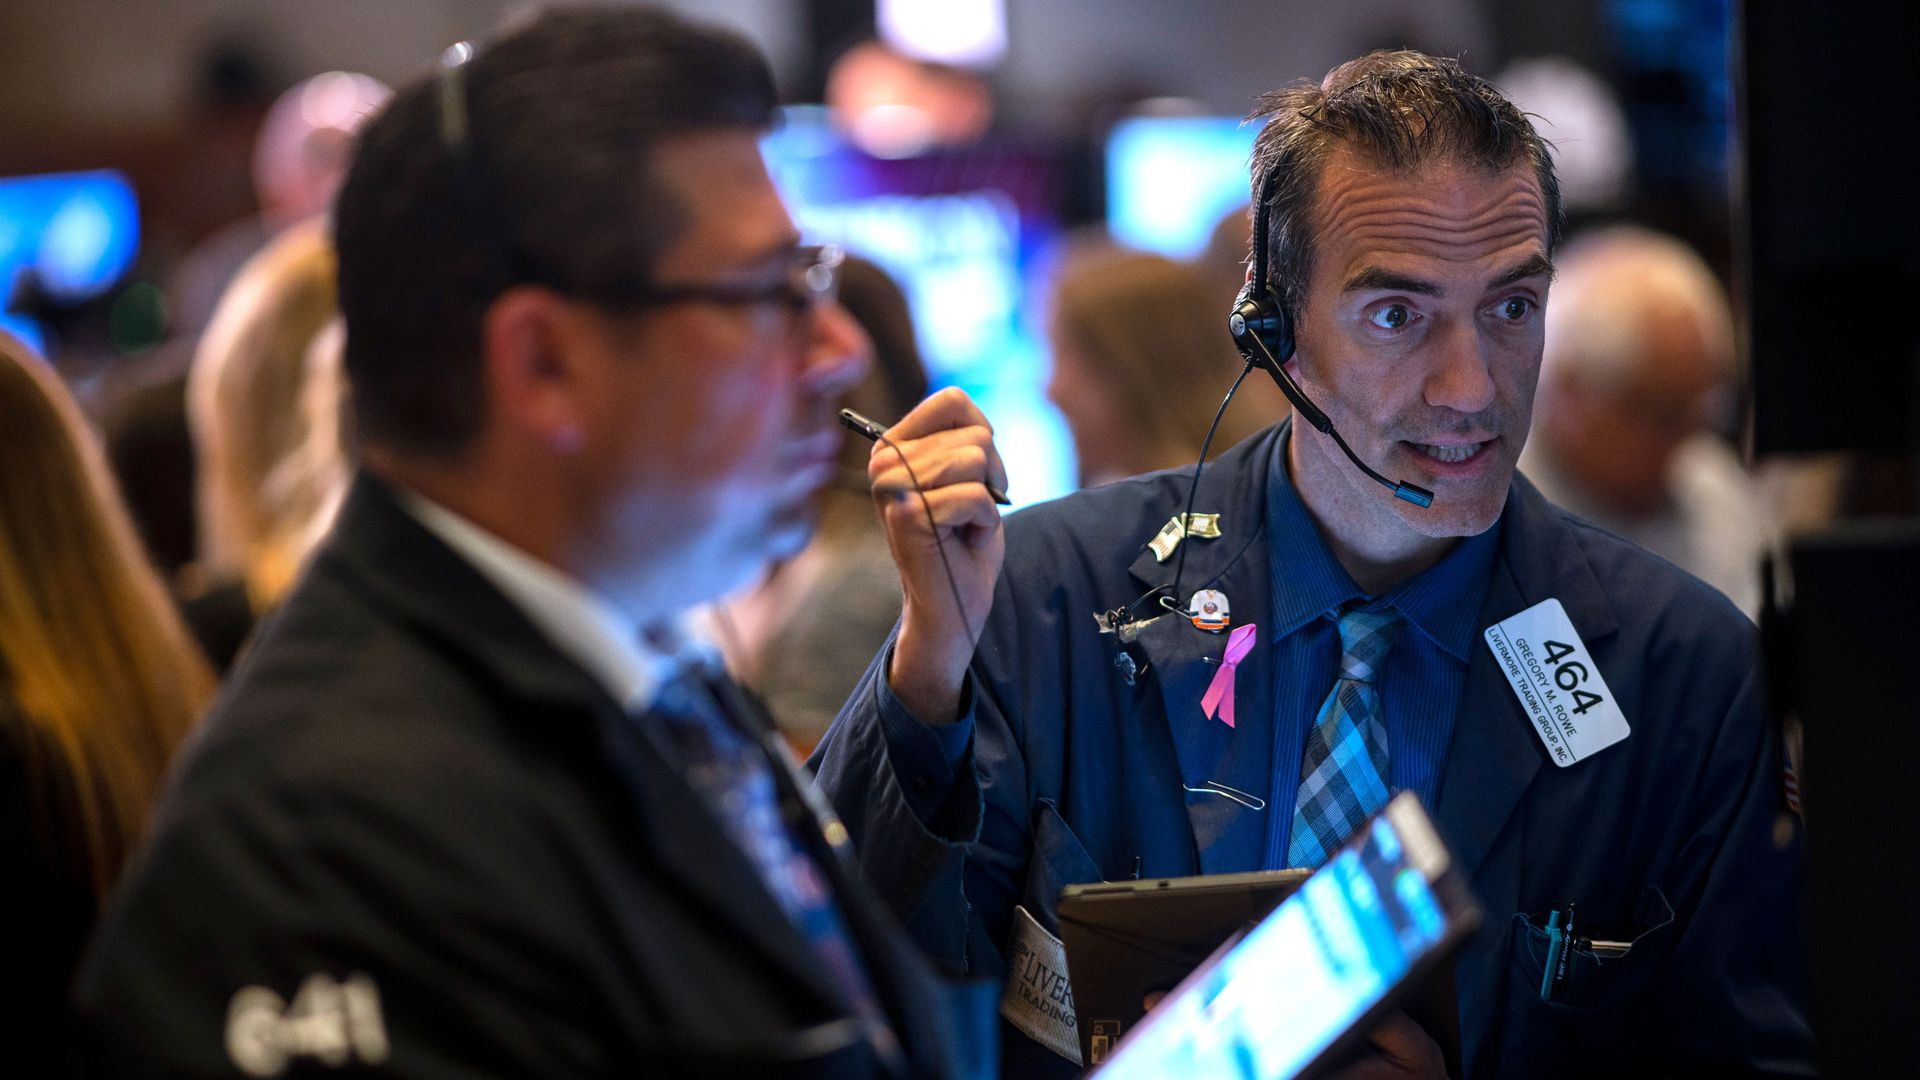 Traders work after the opening bell at the New York Stock Exchange (NYSE) on July 16, 2019, in New York City.